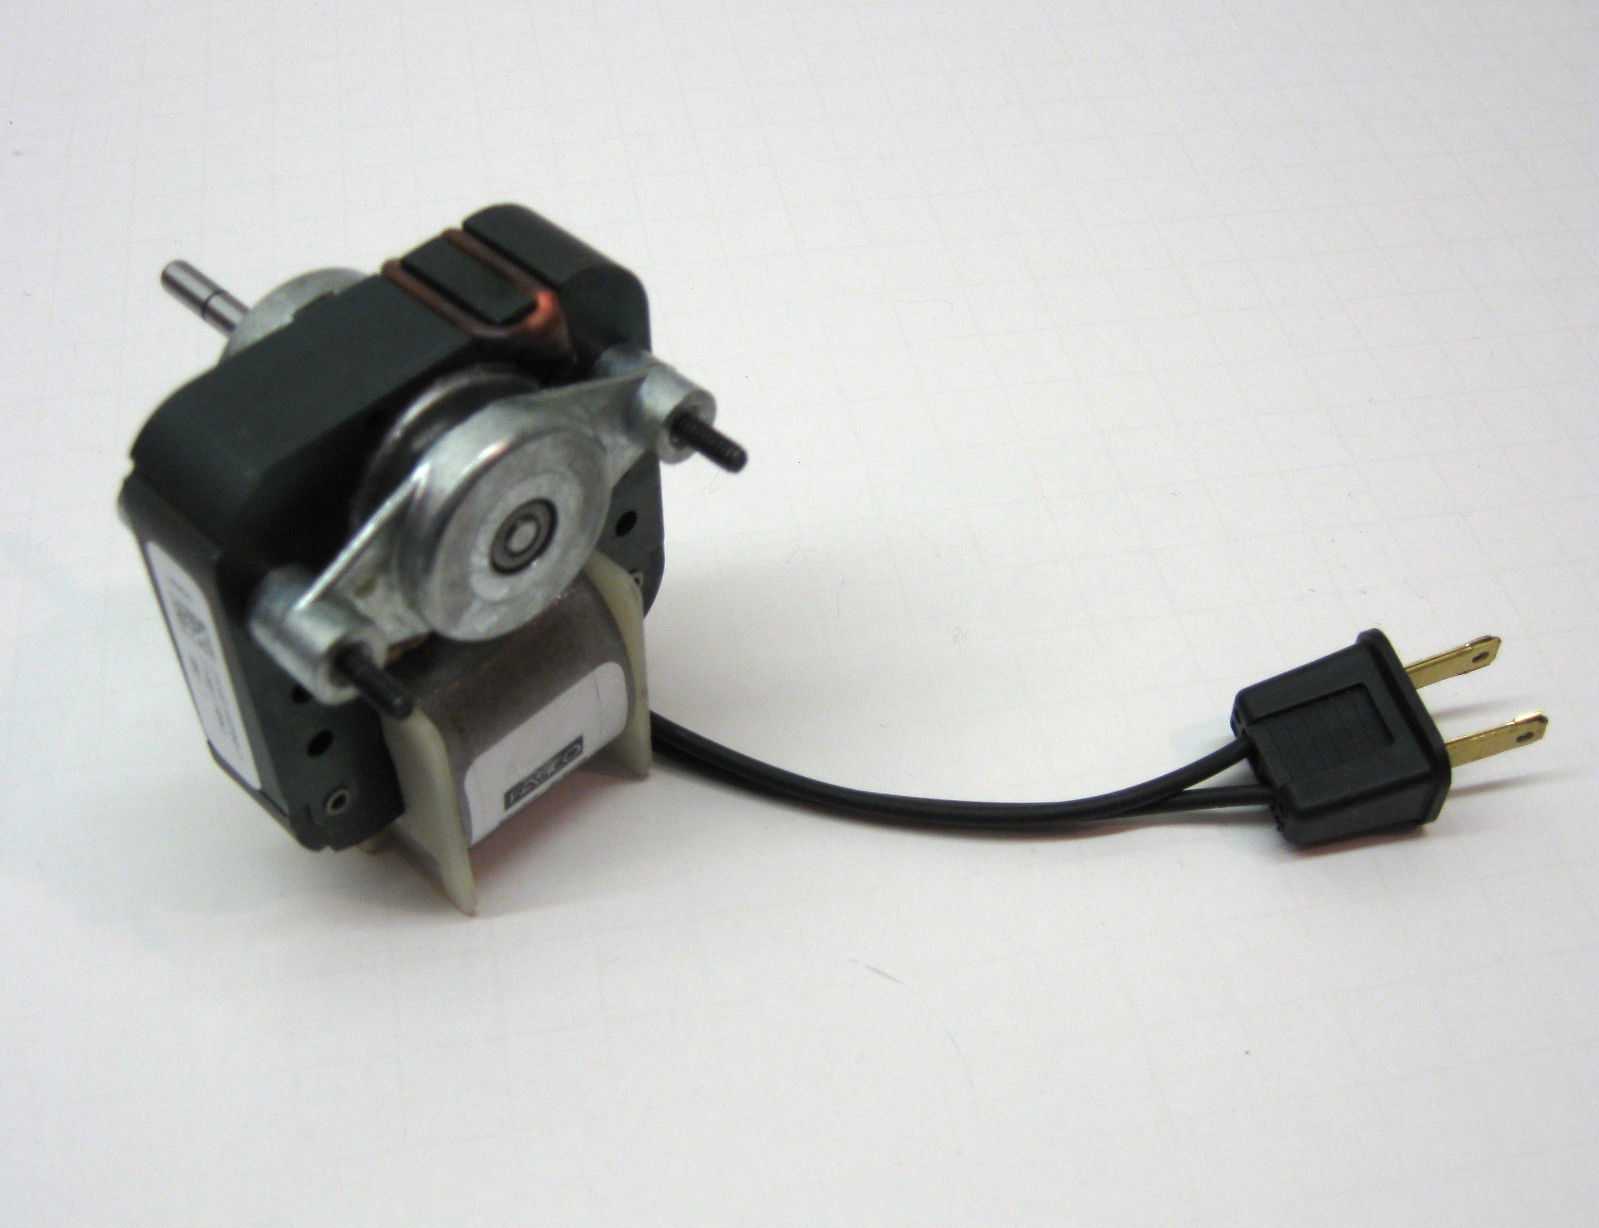 60100 Packard Bathroom Fan Vent Ventilator Motor For 0648 0027 Refrigerator Replacement Parts Repalcement And Diagram